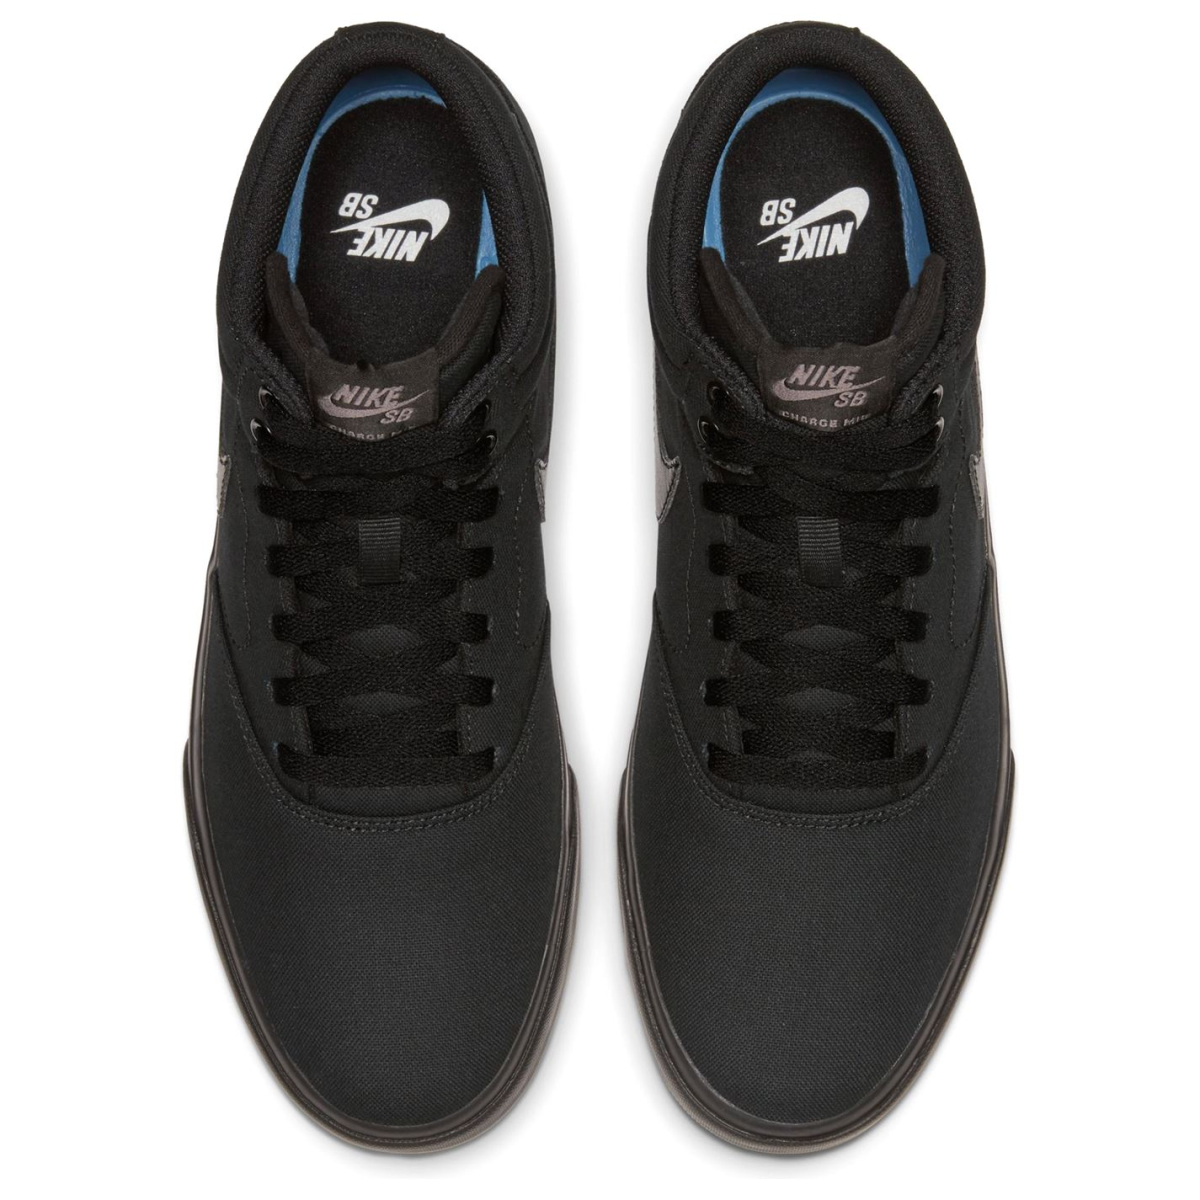 Nike-SB-Lot-Mid-Hommes-Skate-Chaussures-Skater-Chaussures-Chaussures-De-Sport-Toile-2017 miniature 11